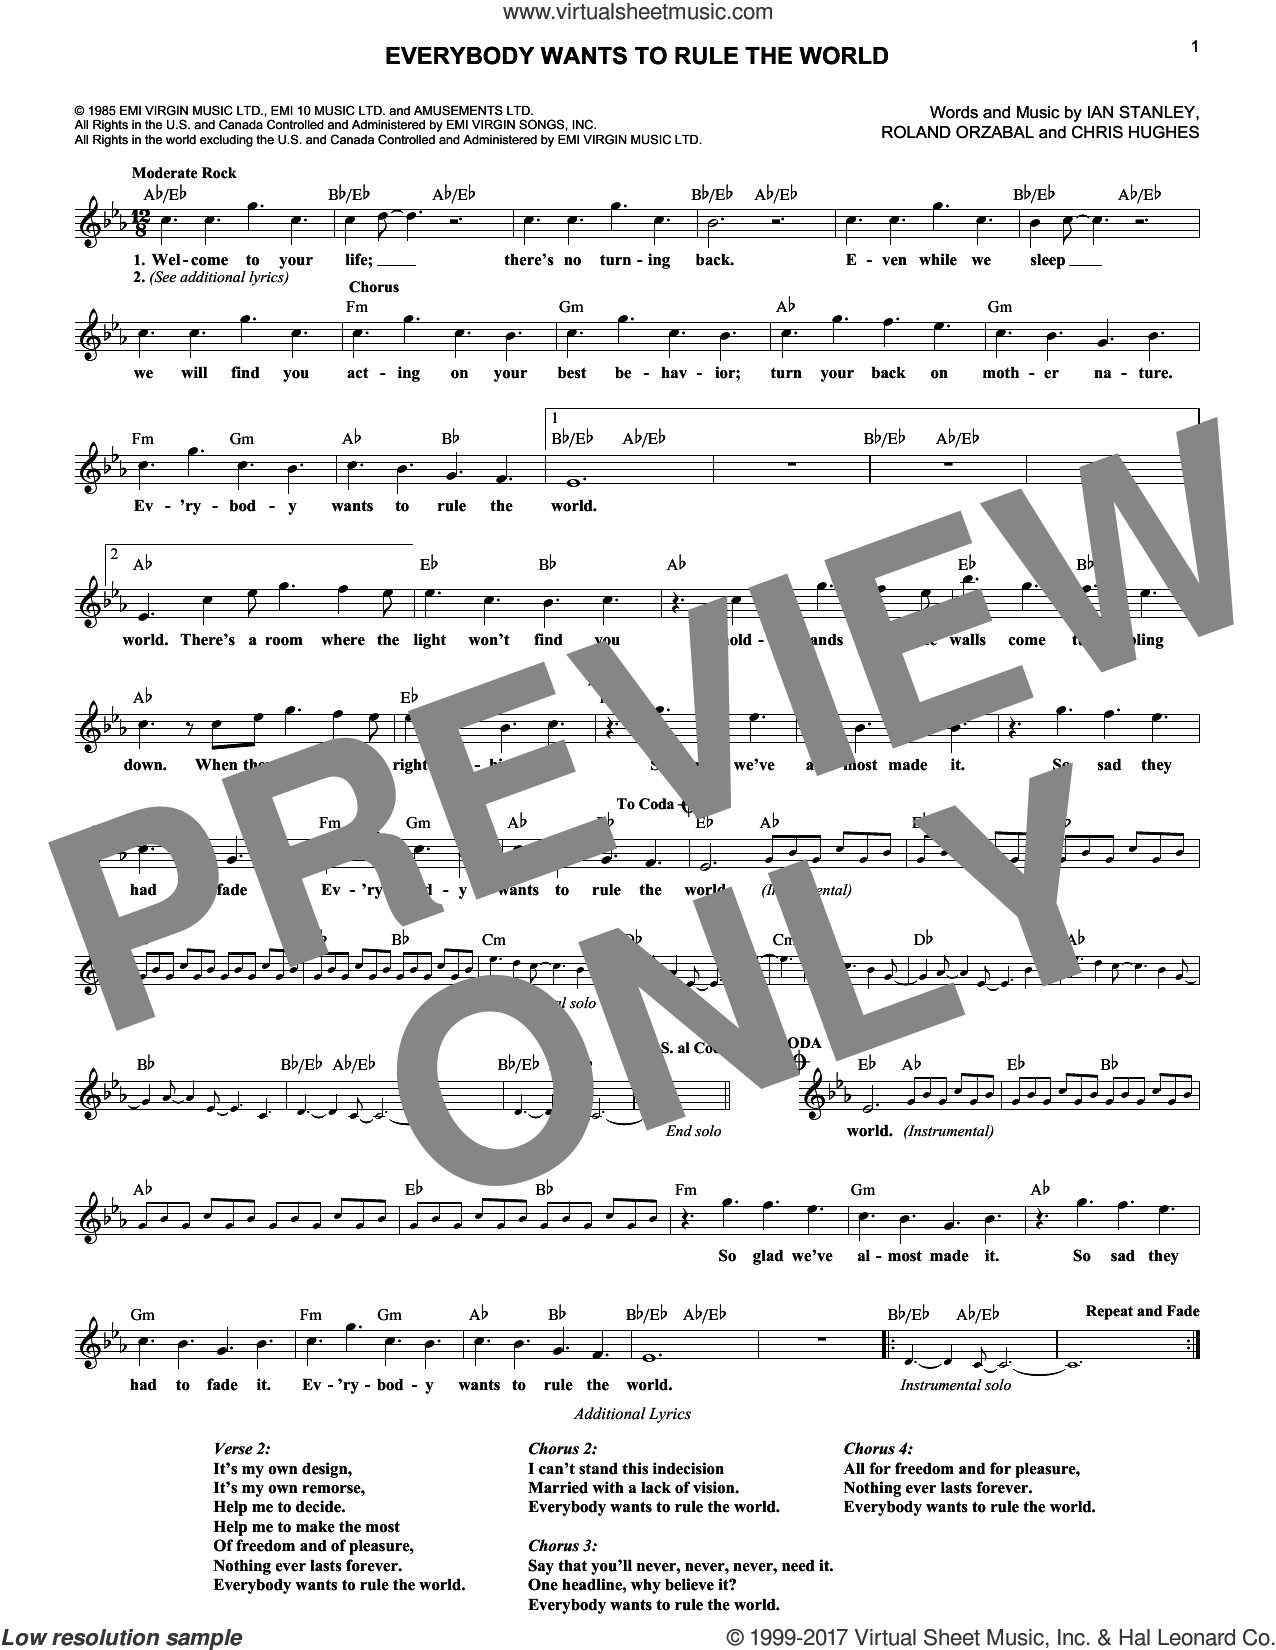 Everybody Wants To Rule The World sheet music for voice and other instruments (fake book) by Tears For Fears, Christopher Hughes, Ian Stanley and Roland Orzabal, intermediate